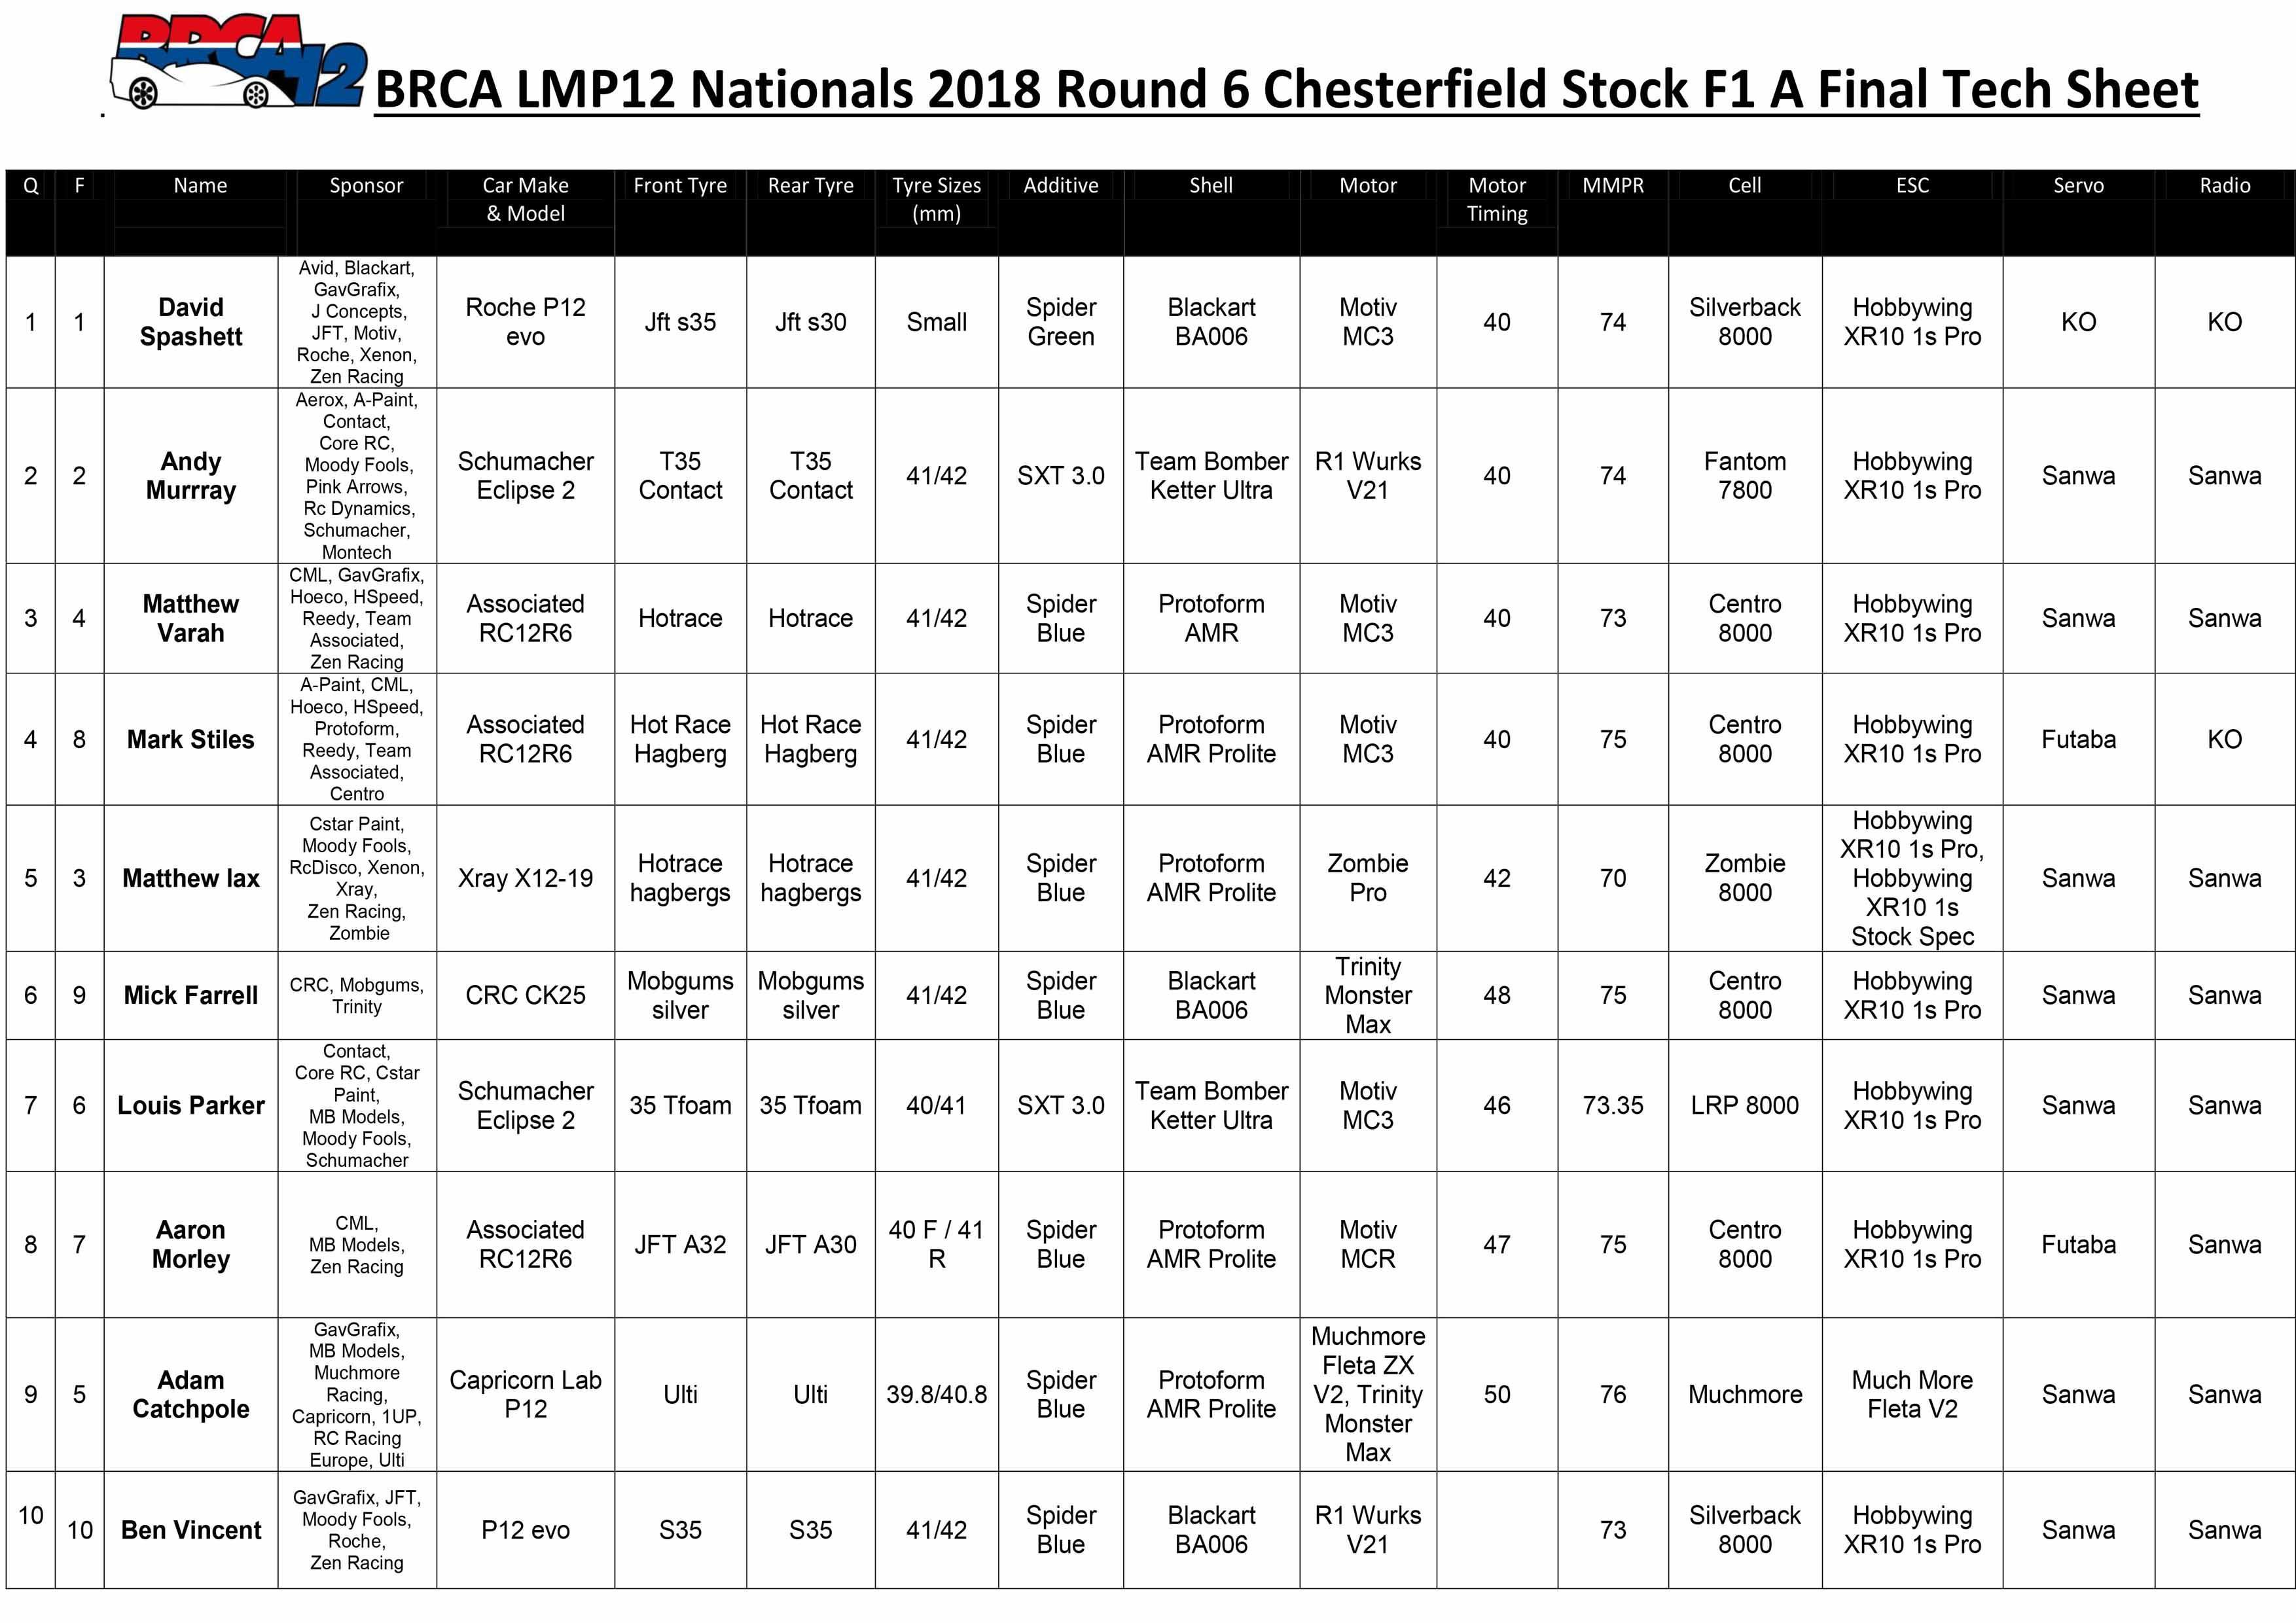 Chesterfield Stock F1 Tech Sheet